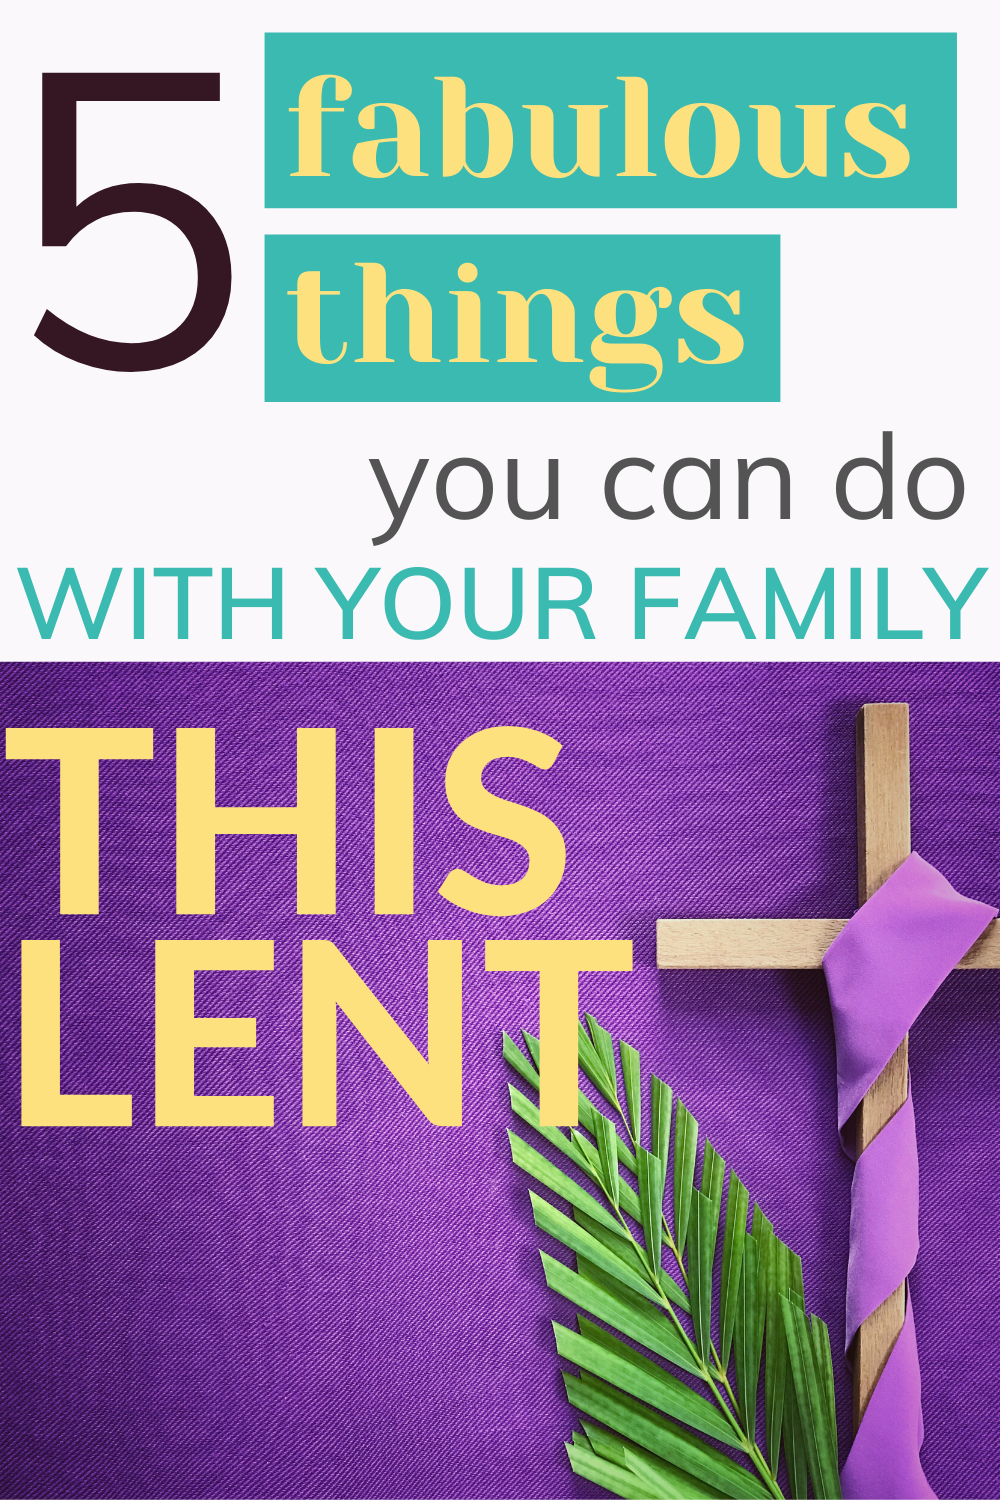 5 fabulous Lent ideas for families!